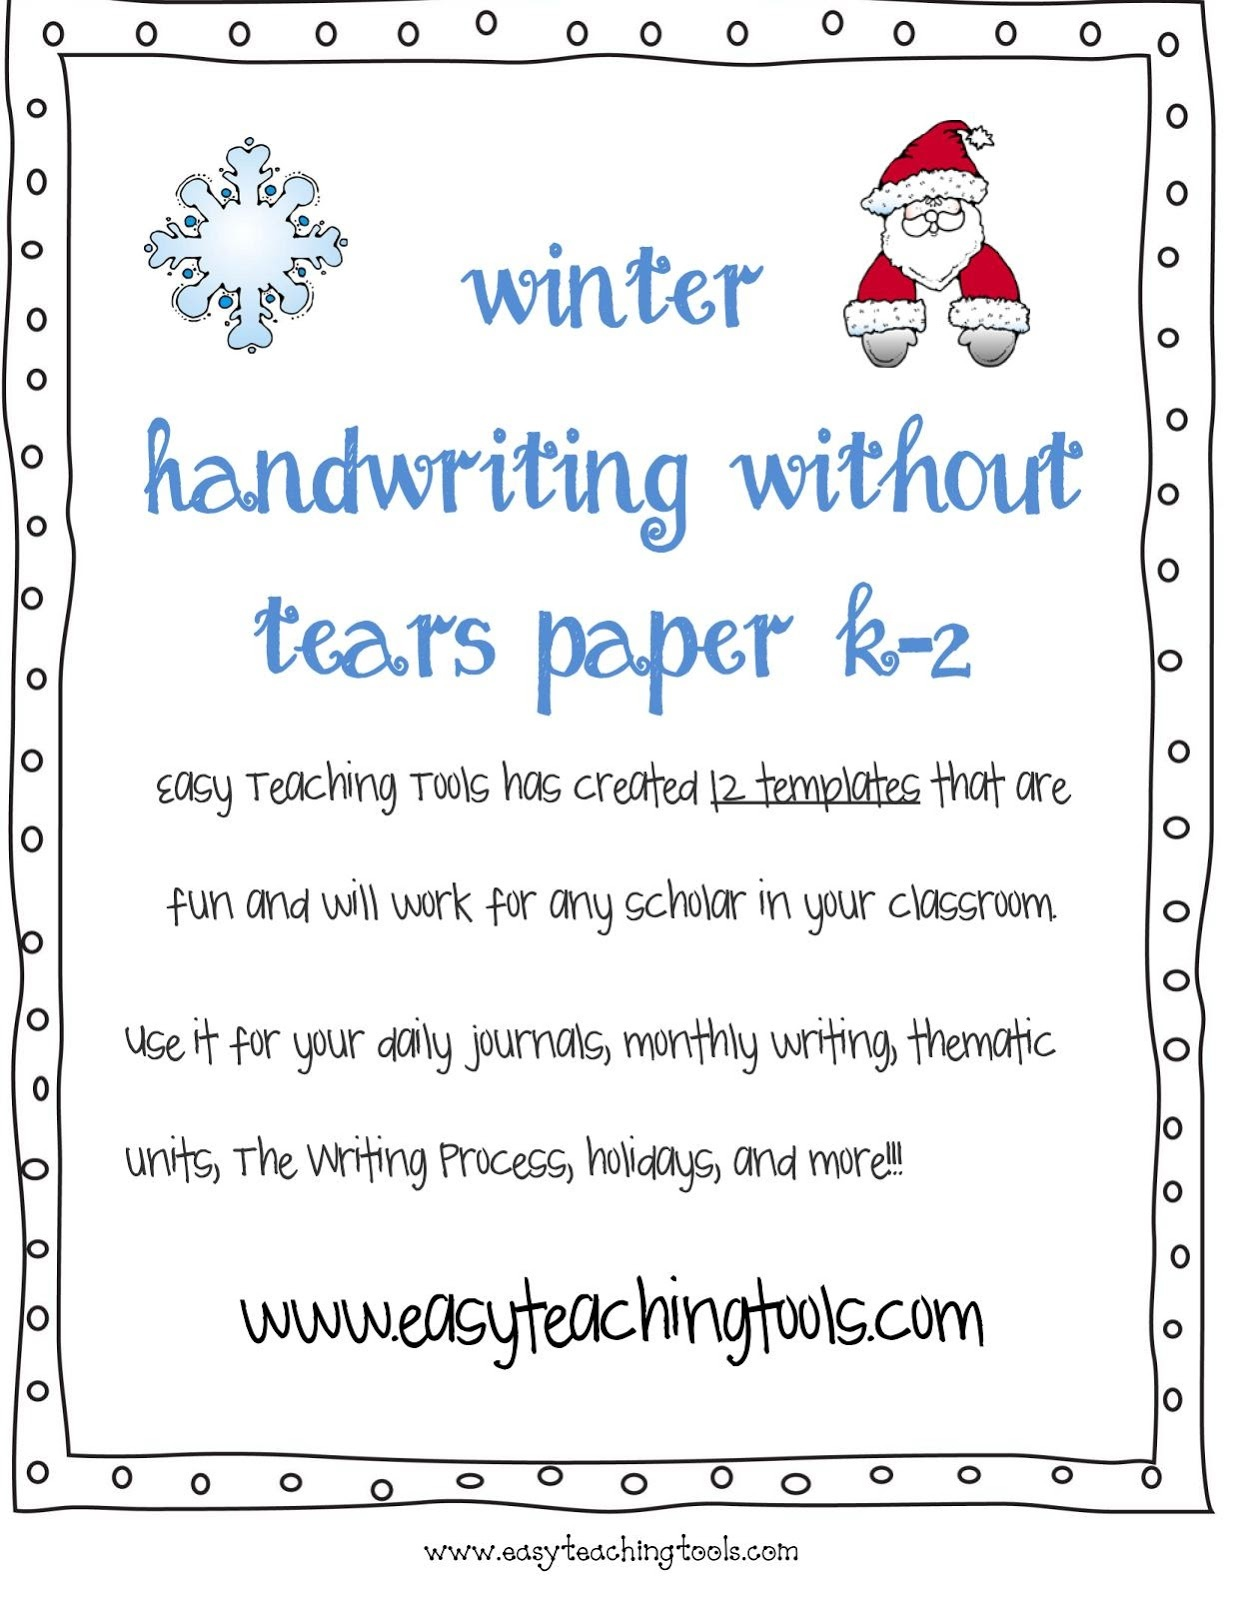 Handwriting Without Tears Writing Paper - Handwriting Without Tears Worksheets Free Printable